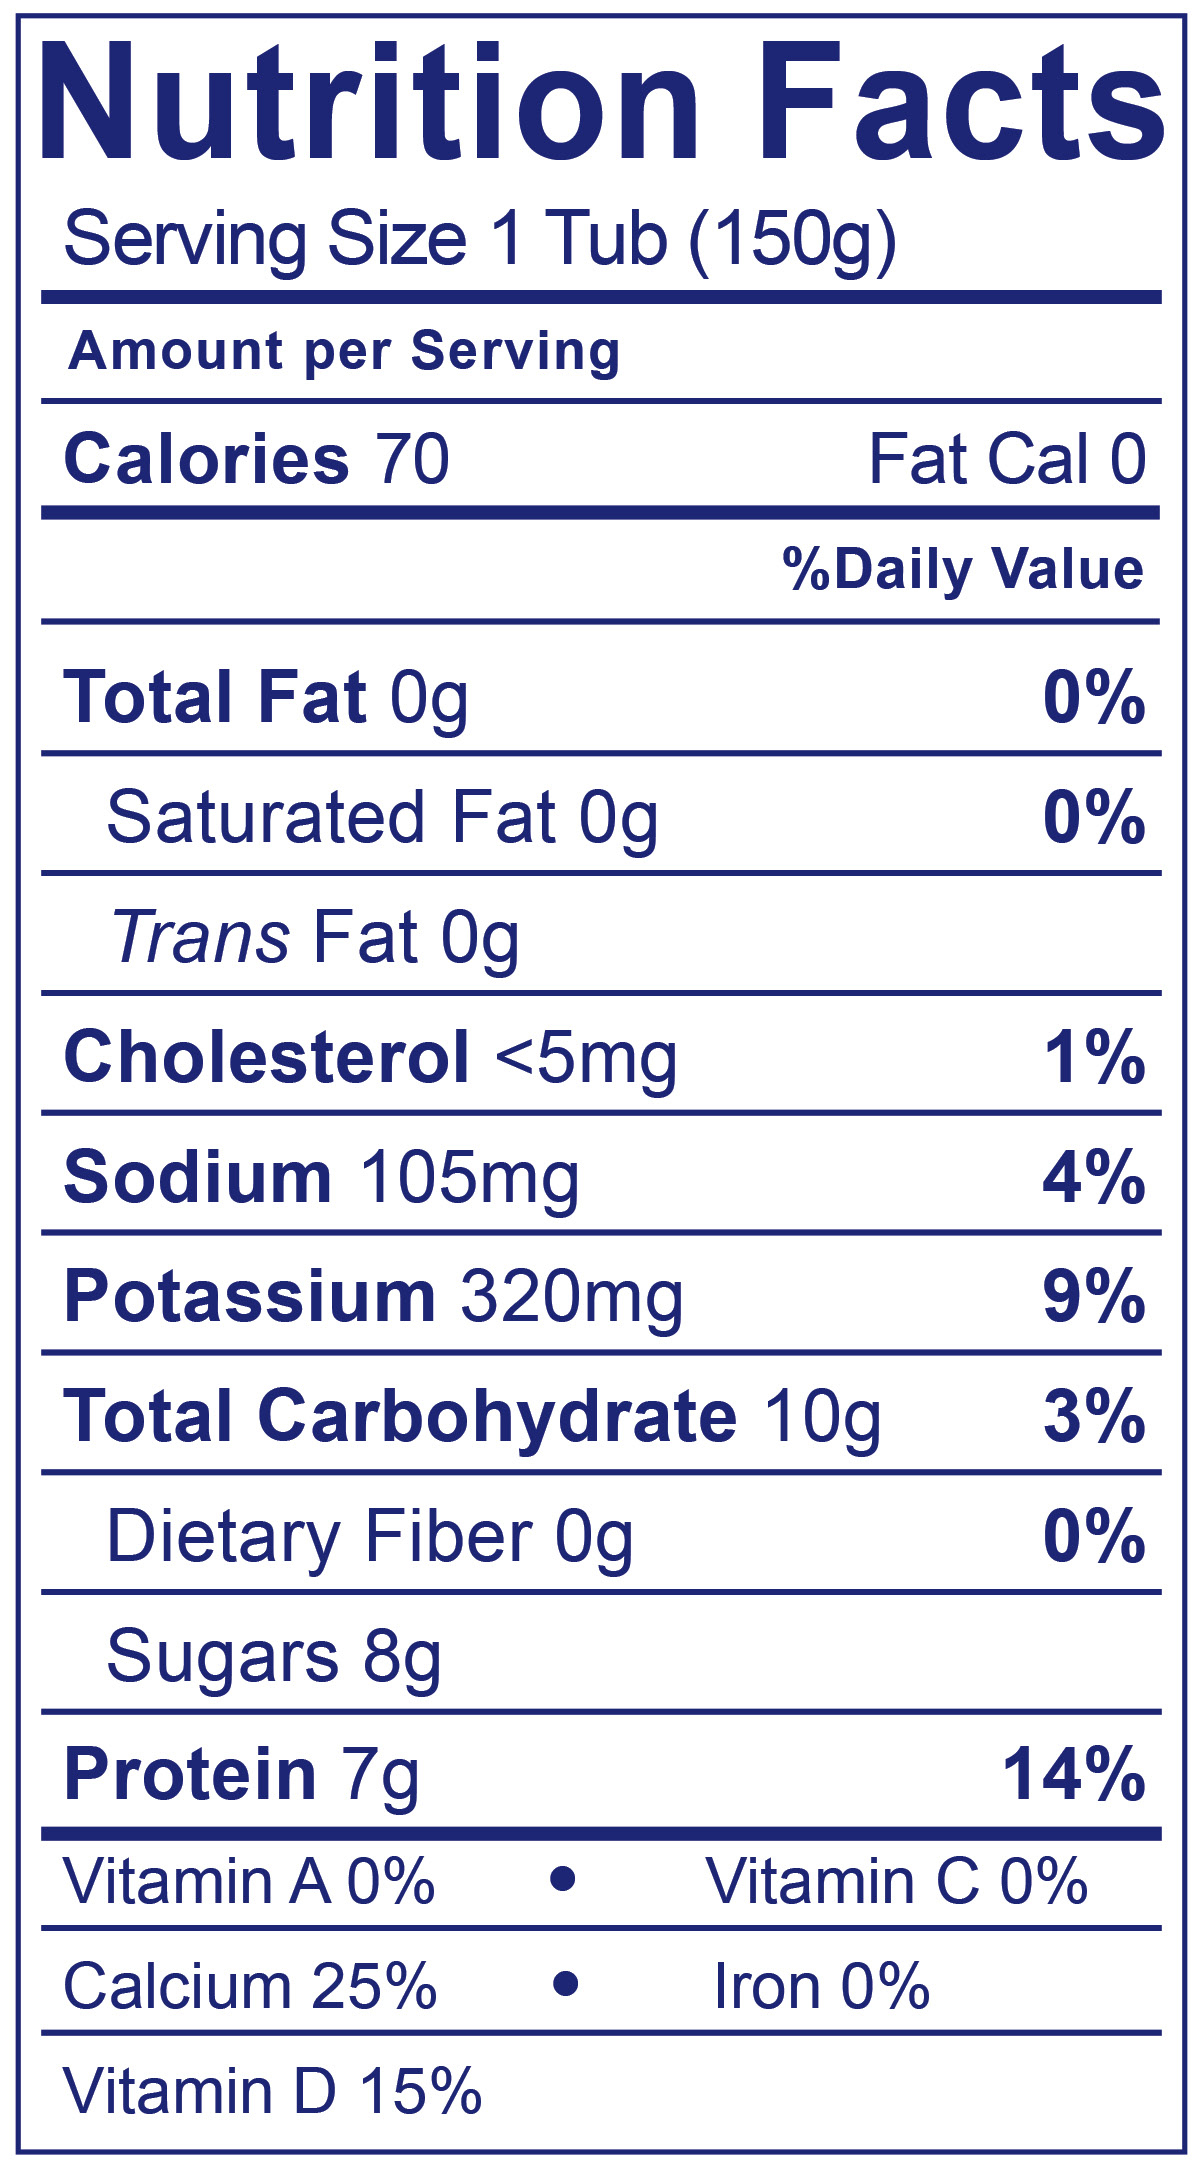 Smooth & Creamy  Fat Free Plain - Nutrition Facts